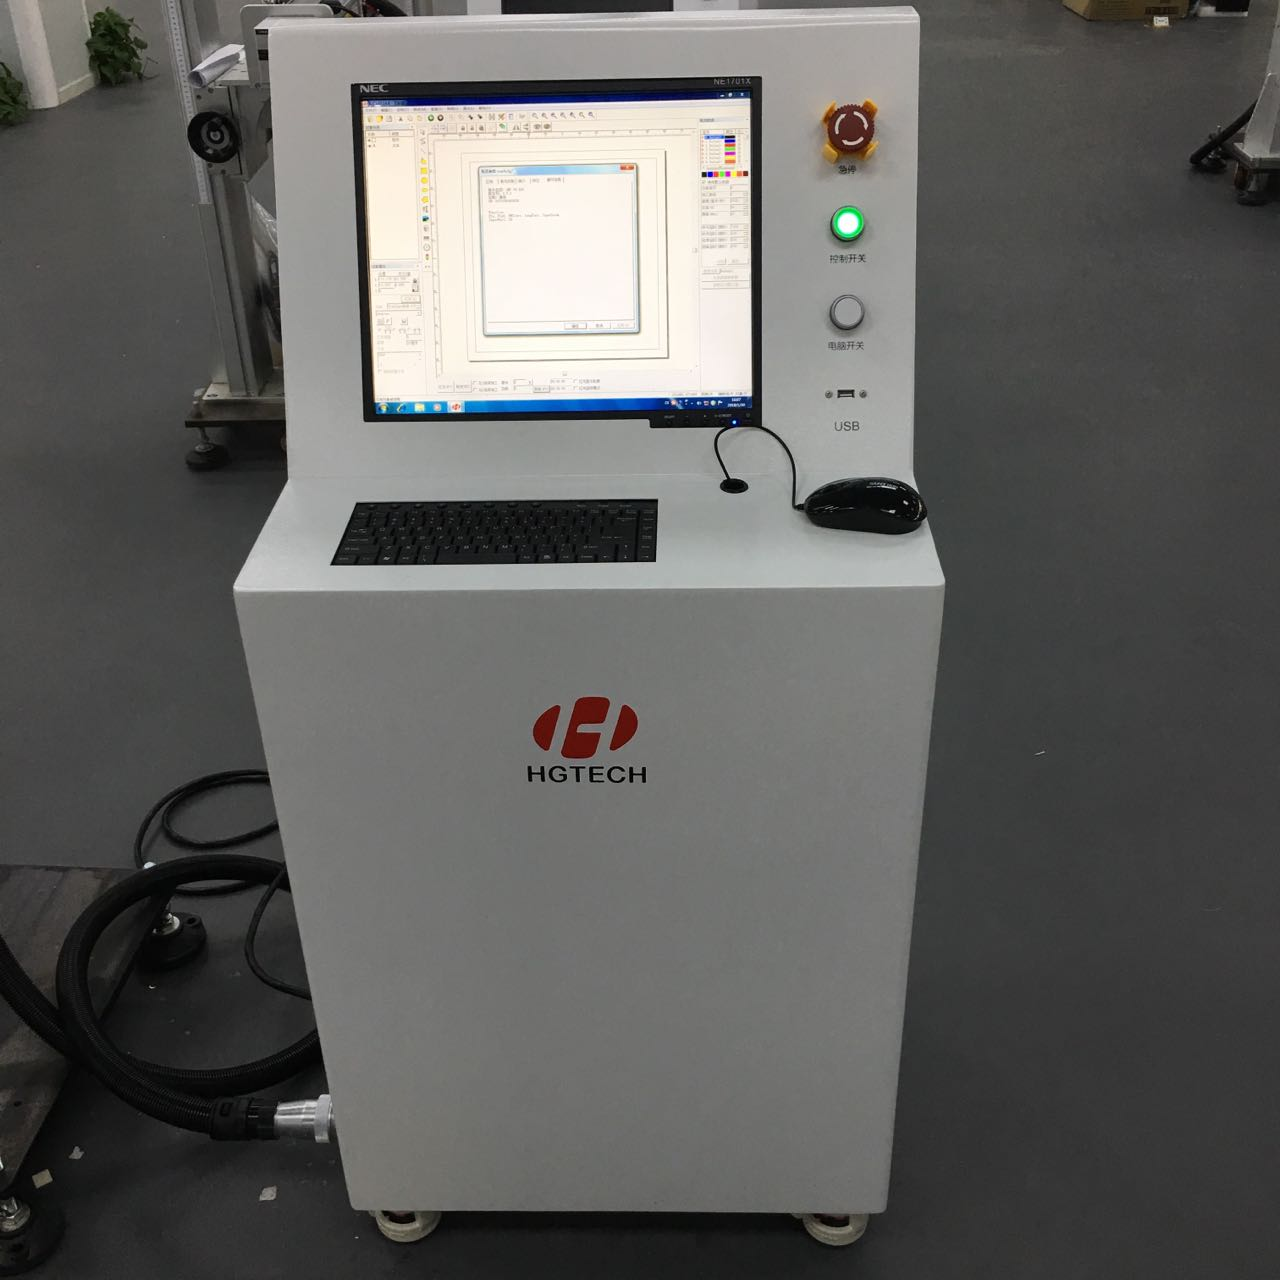 China factory supplier quick installation easy operating fiber laser marking machine with CE ISO FDA IAF certification